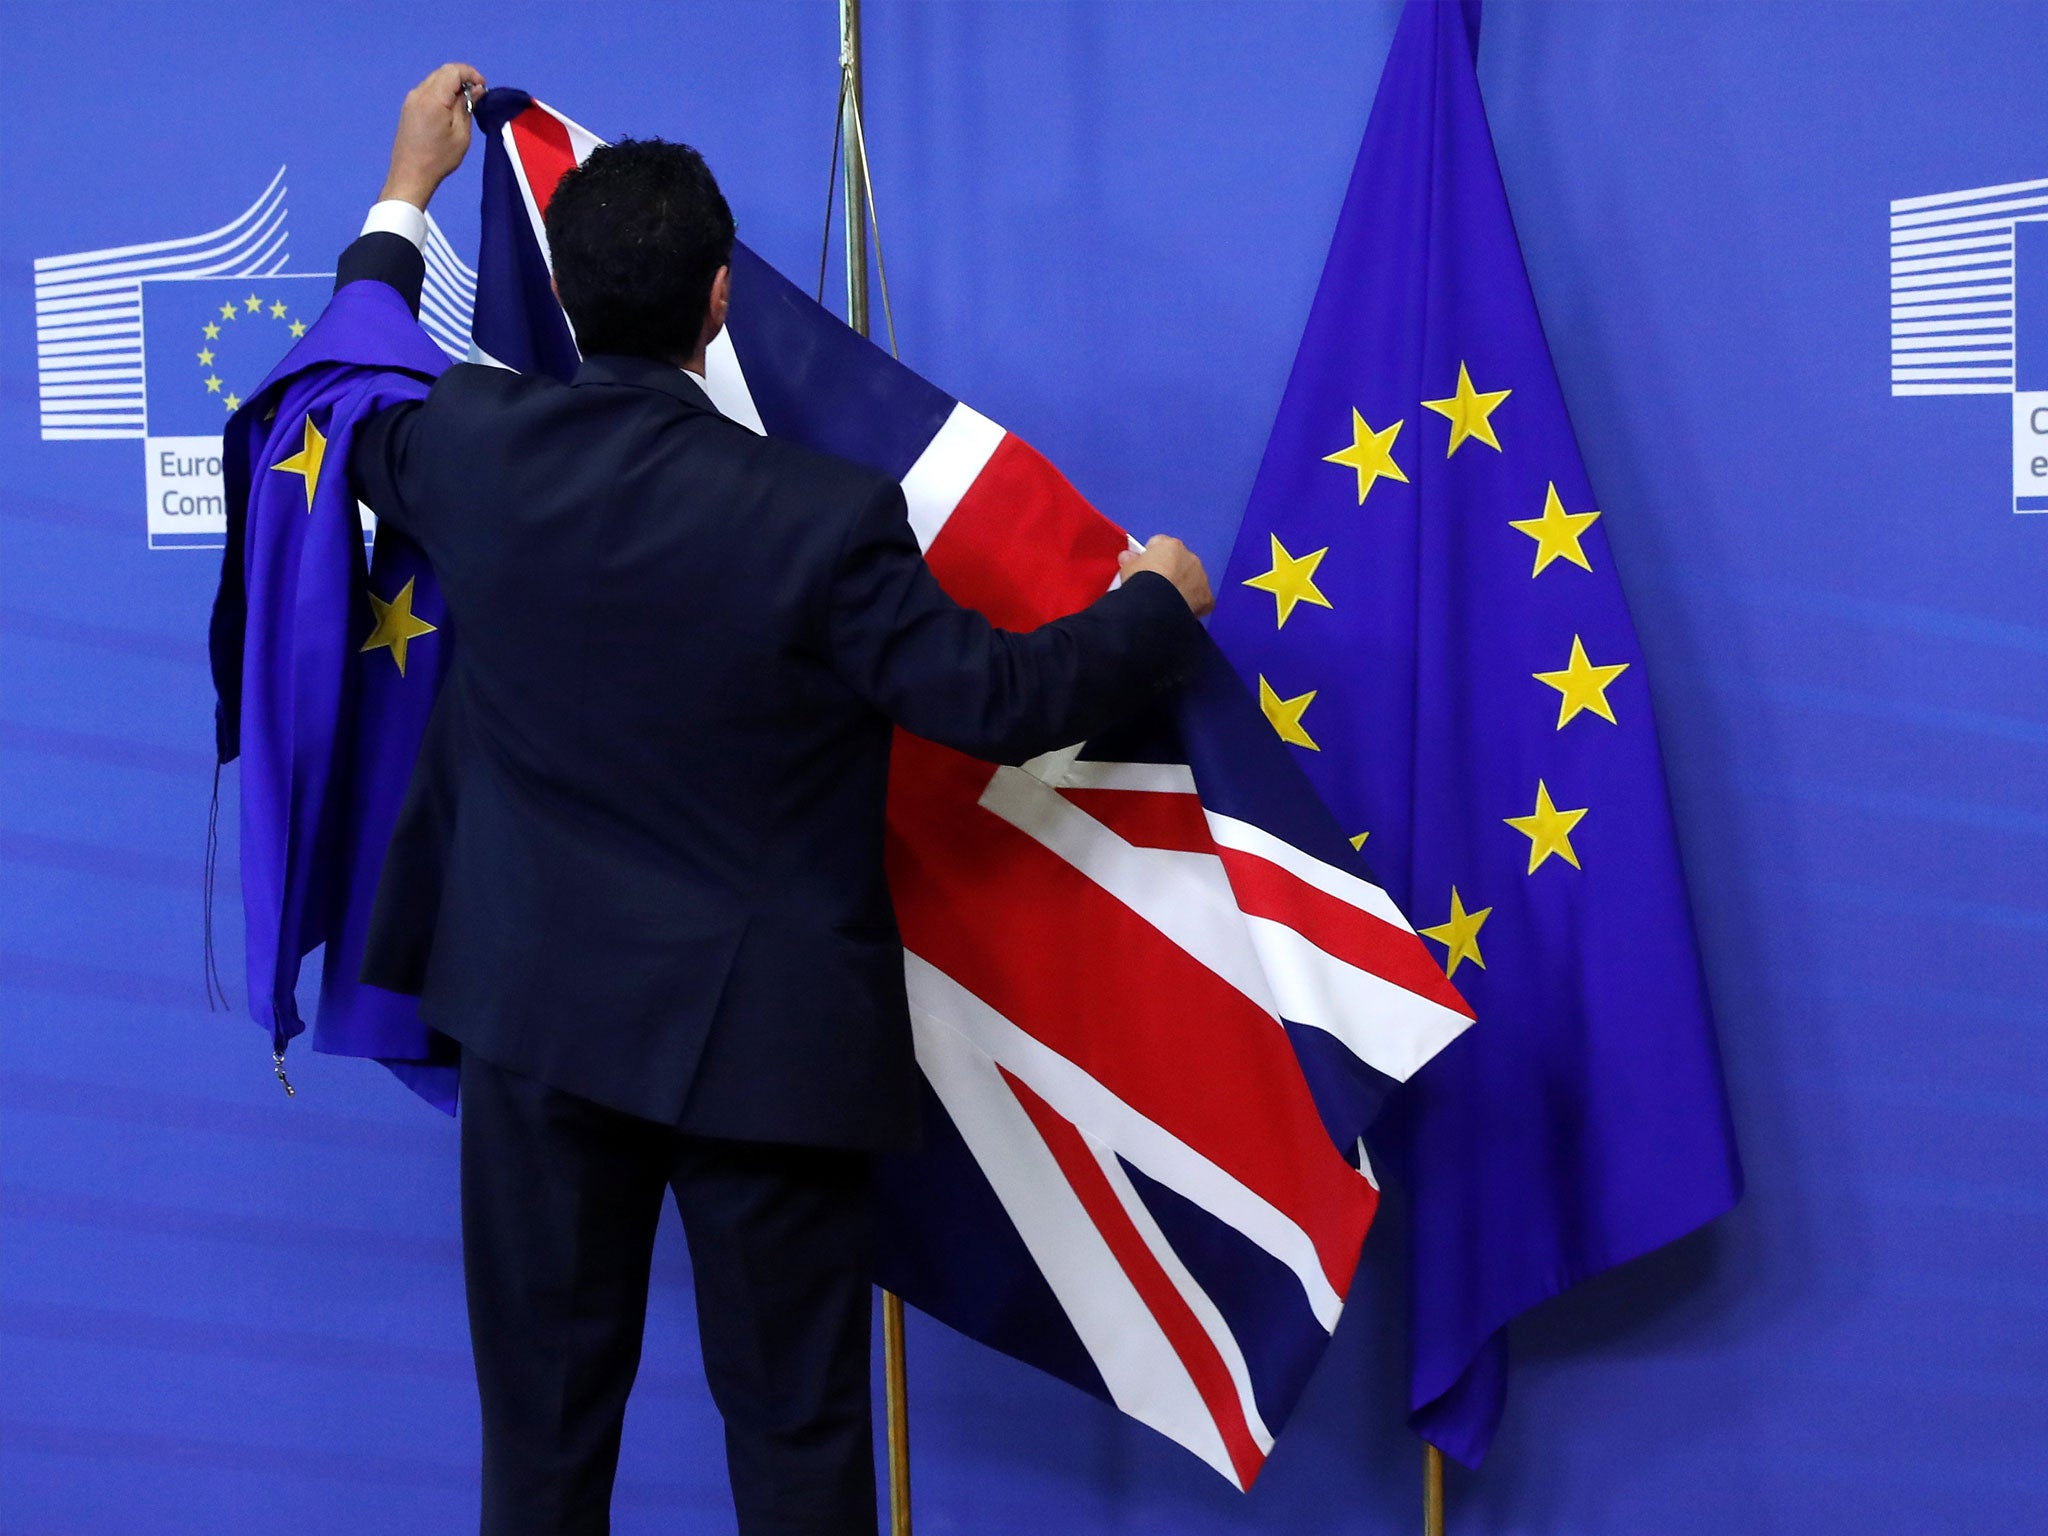 Brexit News: Article 50 Author Calls For Brexit To Be Halted With A